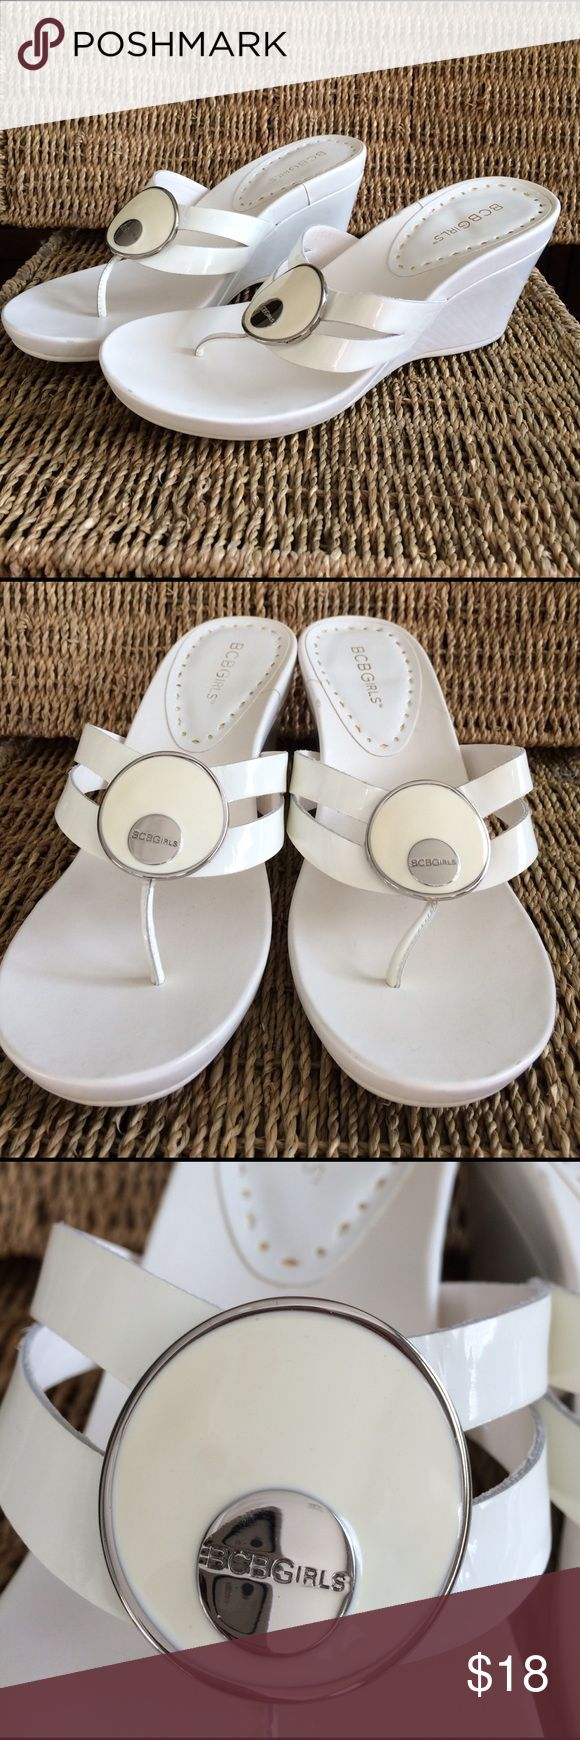 """BCBGirls white wedge flip flops Just in time for the warmer weather!  White thong sandals with a 3"""" wedge.  White circle with silver outline and BCBGirls logo on front.  Leather upper.  Size 8 BCBGirls Shoes Wedges"""